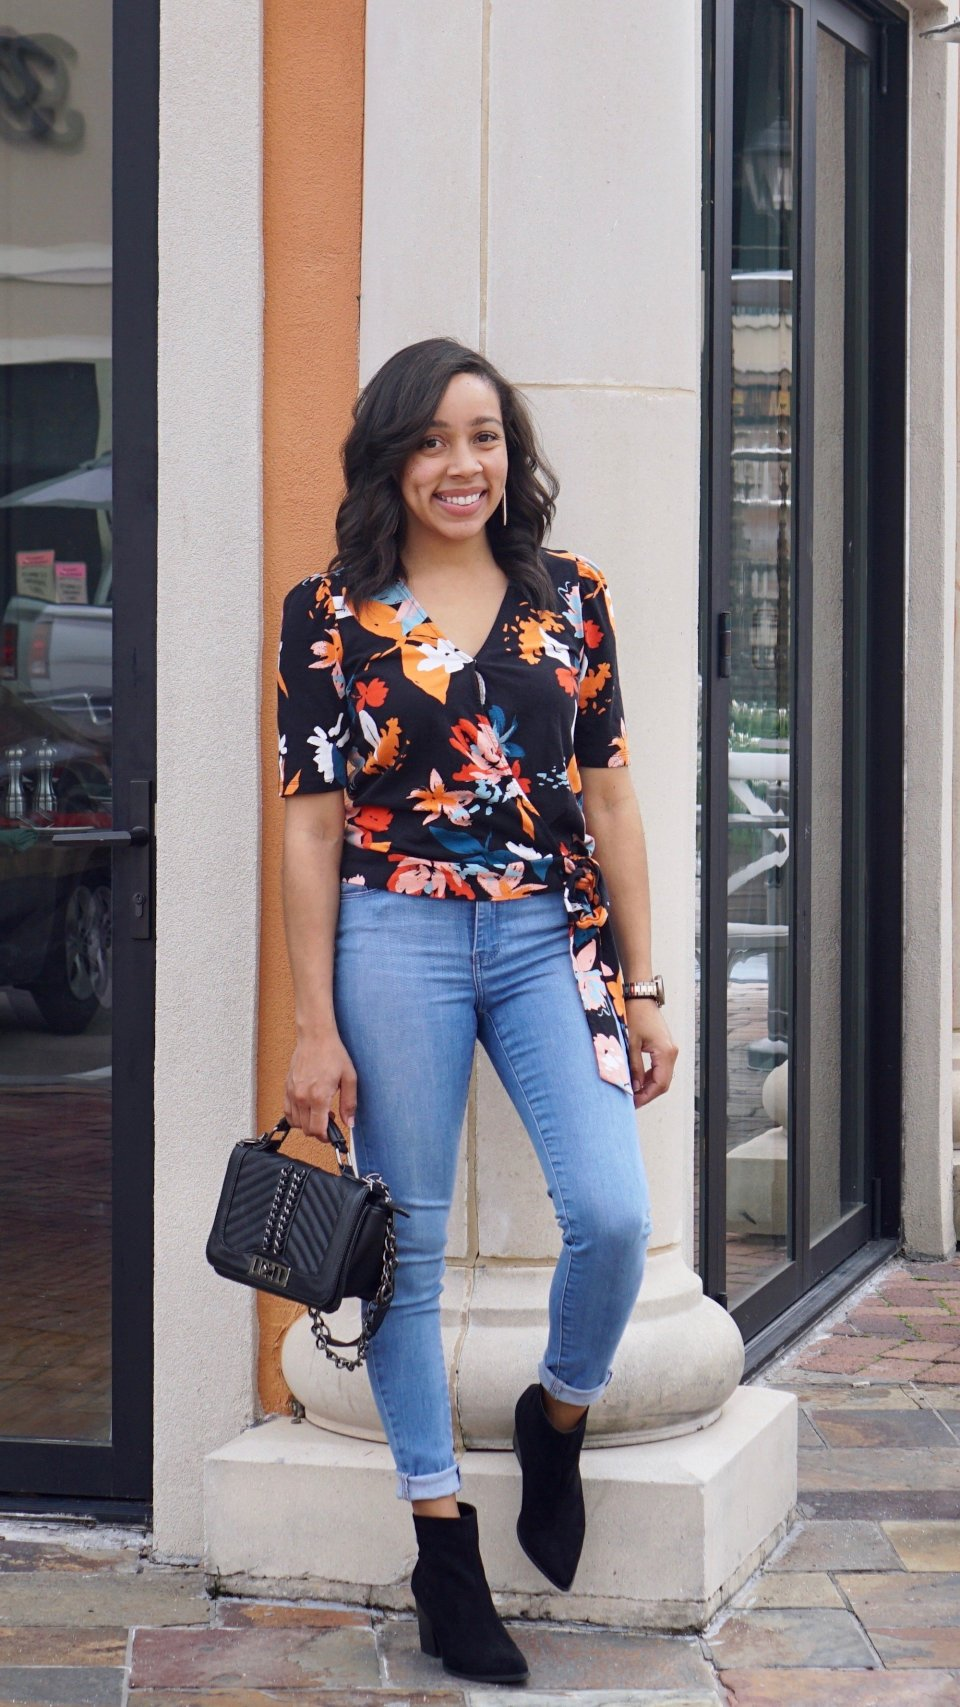 Trendy Thursday LinkUP + Dreaming of Spring in Bold Floral Prints